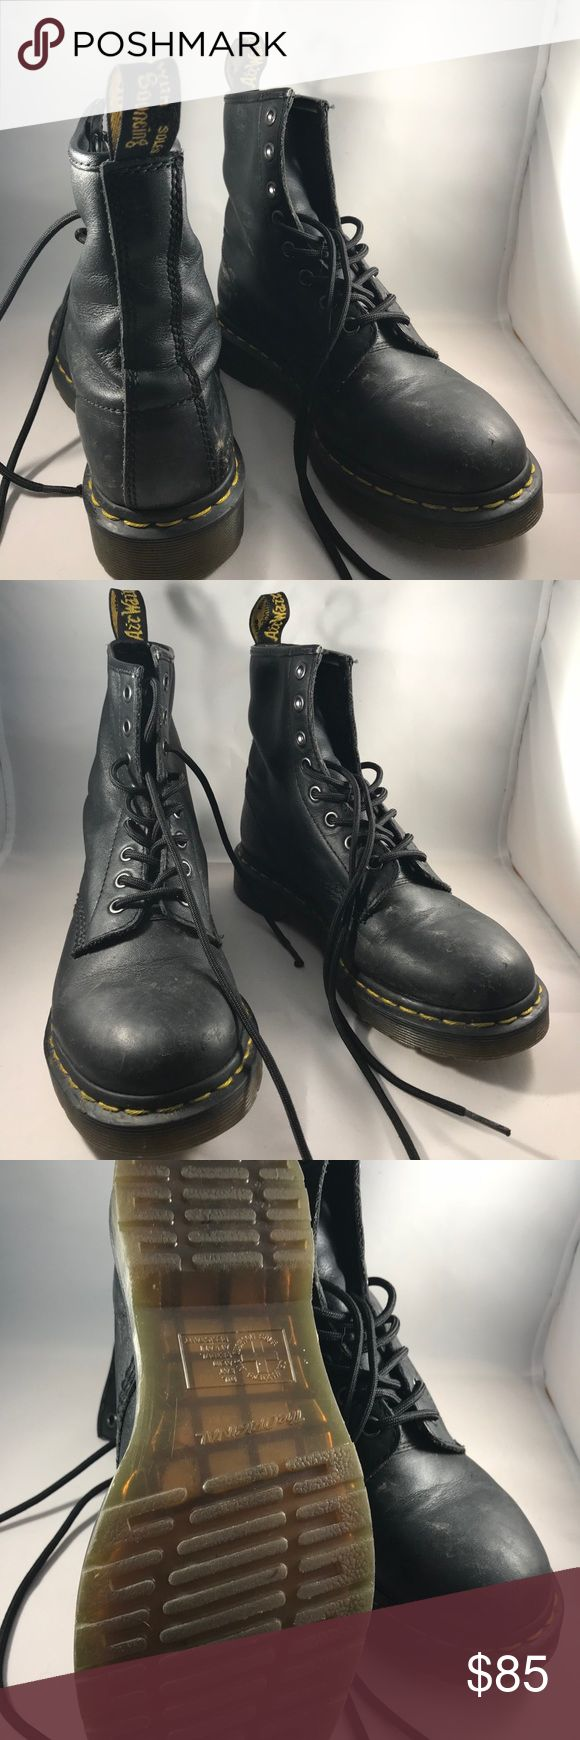 Dr. Martens 1460 Smooth Black Like new 1460 (the original 8 eye) Dr. Martens. Comfortable Air cushioned sole, and steel toe. All small scuffs are visible in the pictures. Only worn a handful of times. The size is 6 1/2! Dr. Martens Shoes Lace Up Boots